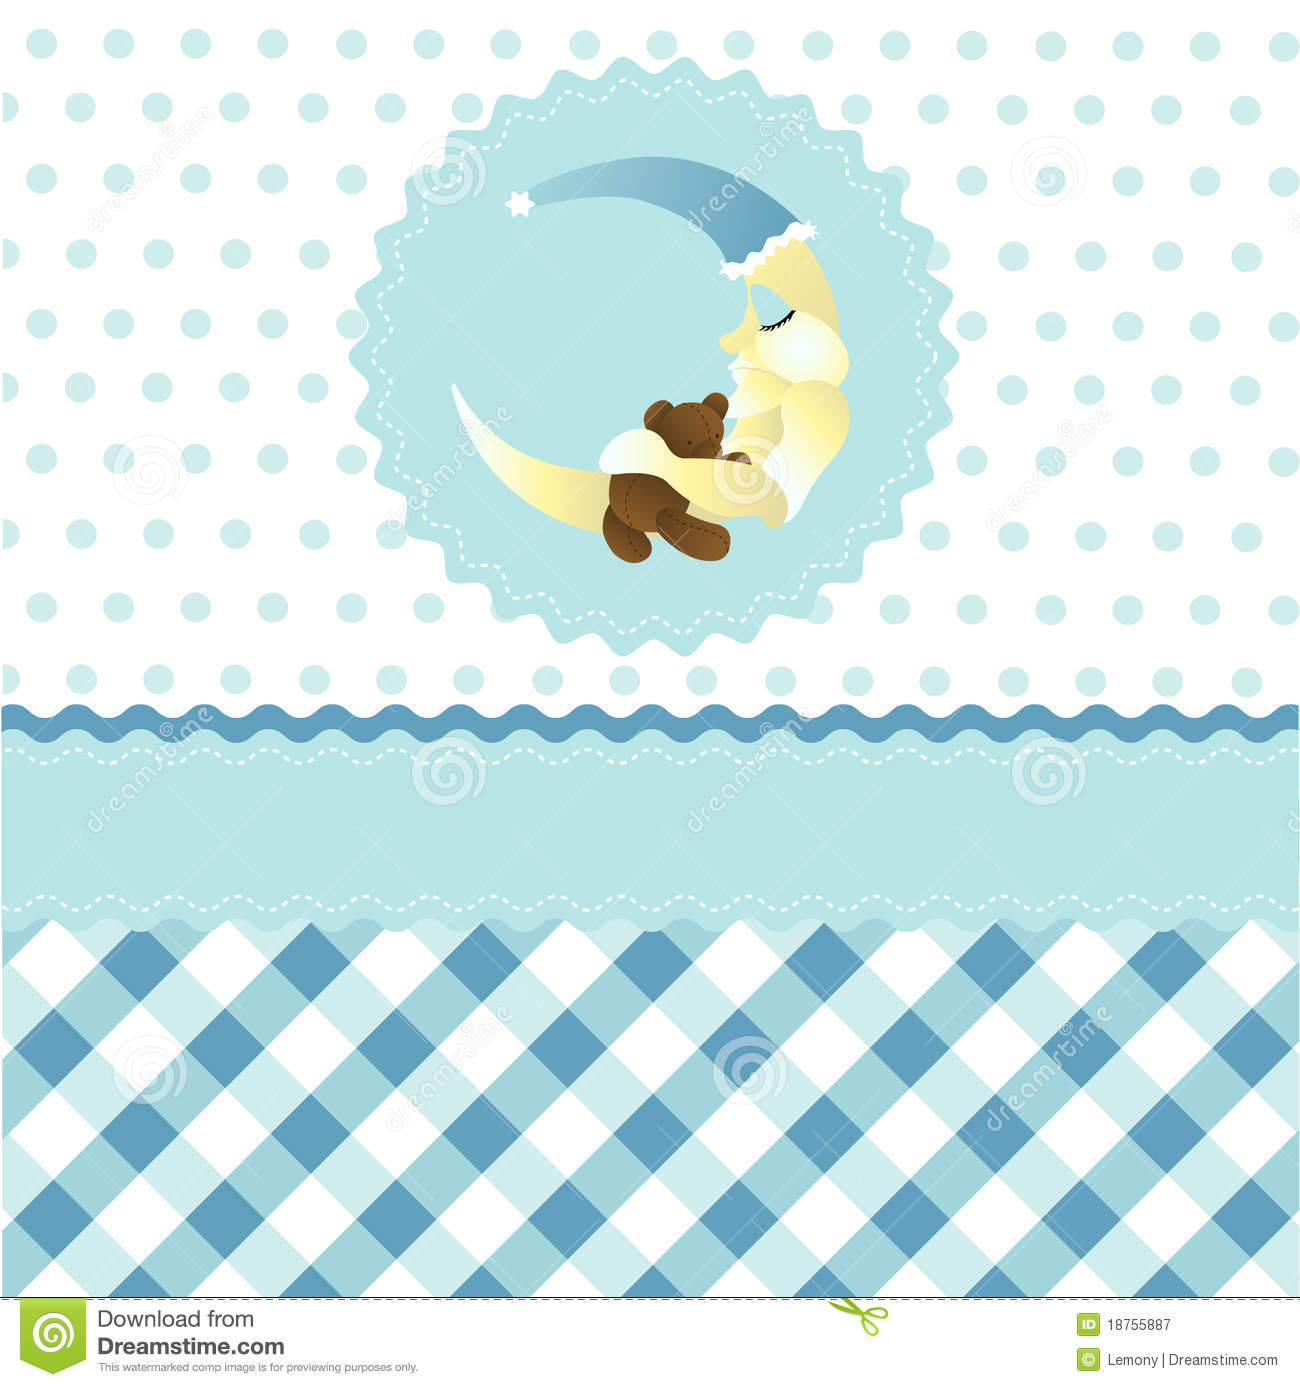 More similar stock images of   Seamless baby boy pattern  Baby Boy Patterns